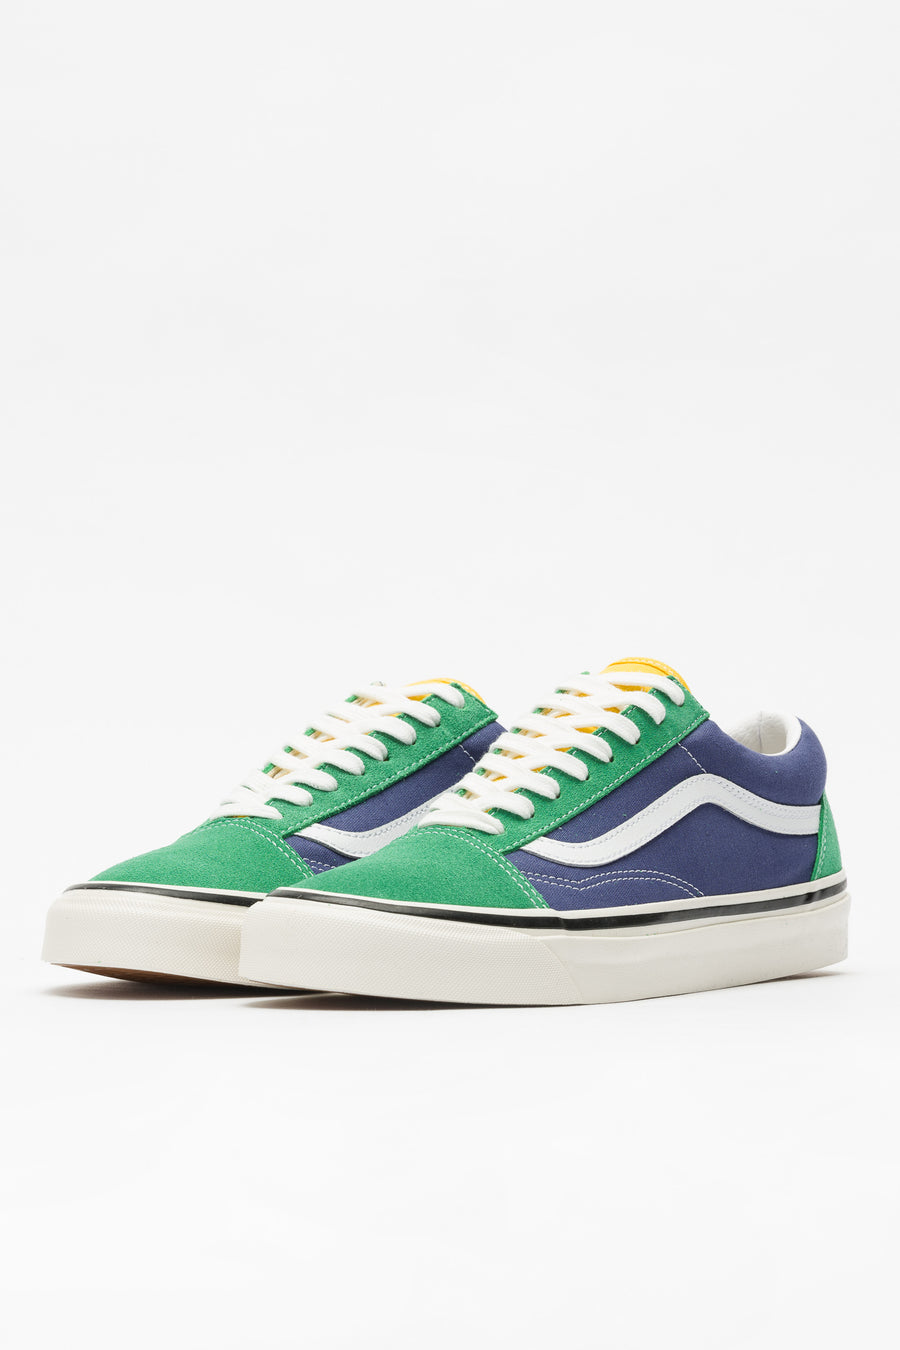 Vans Old Skool 36 DX in Blue/Green - Notre